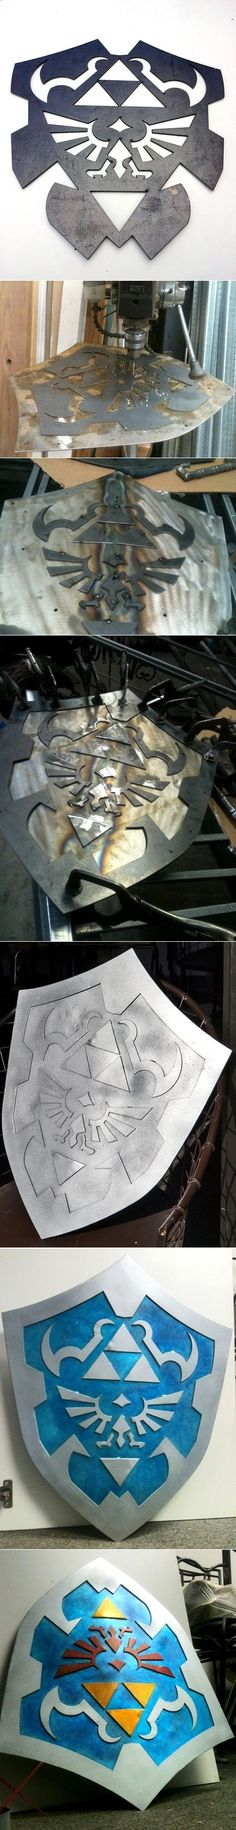 The process of making Link's hylian shield from Zelda : Ocarina of Time by manhattanphd and via @L a guarida geek - #DIY cosplay prop. <3